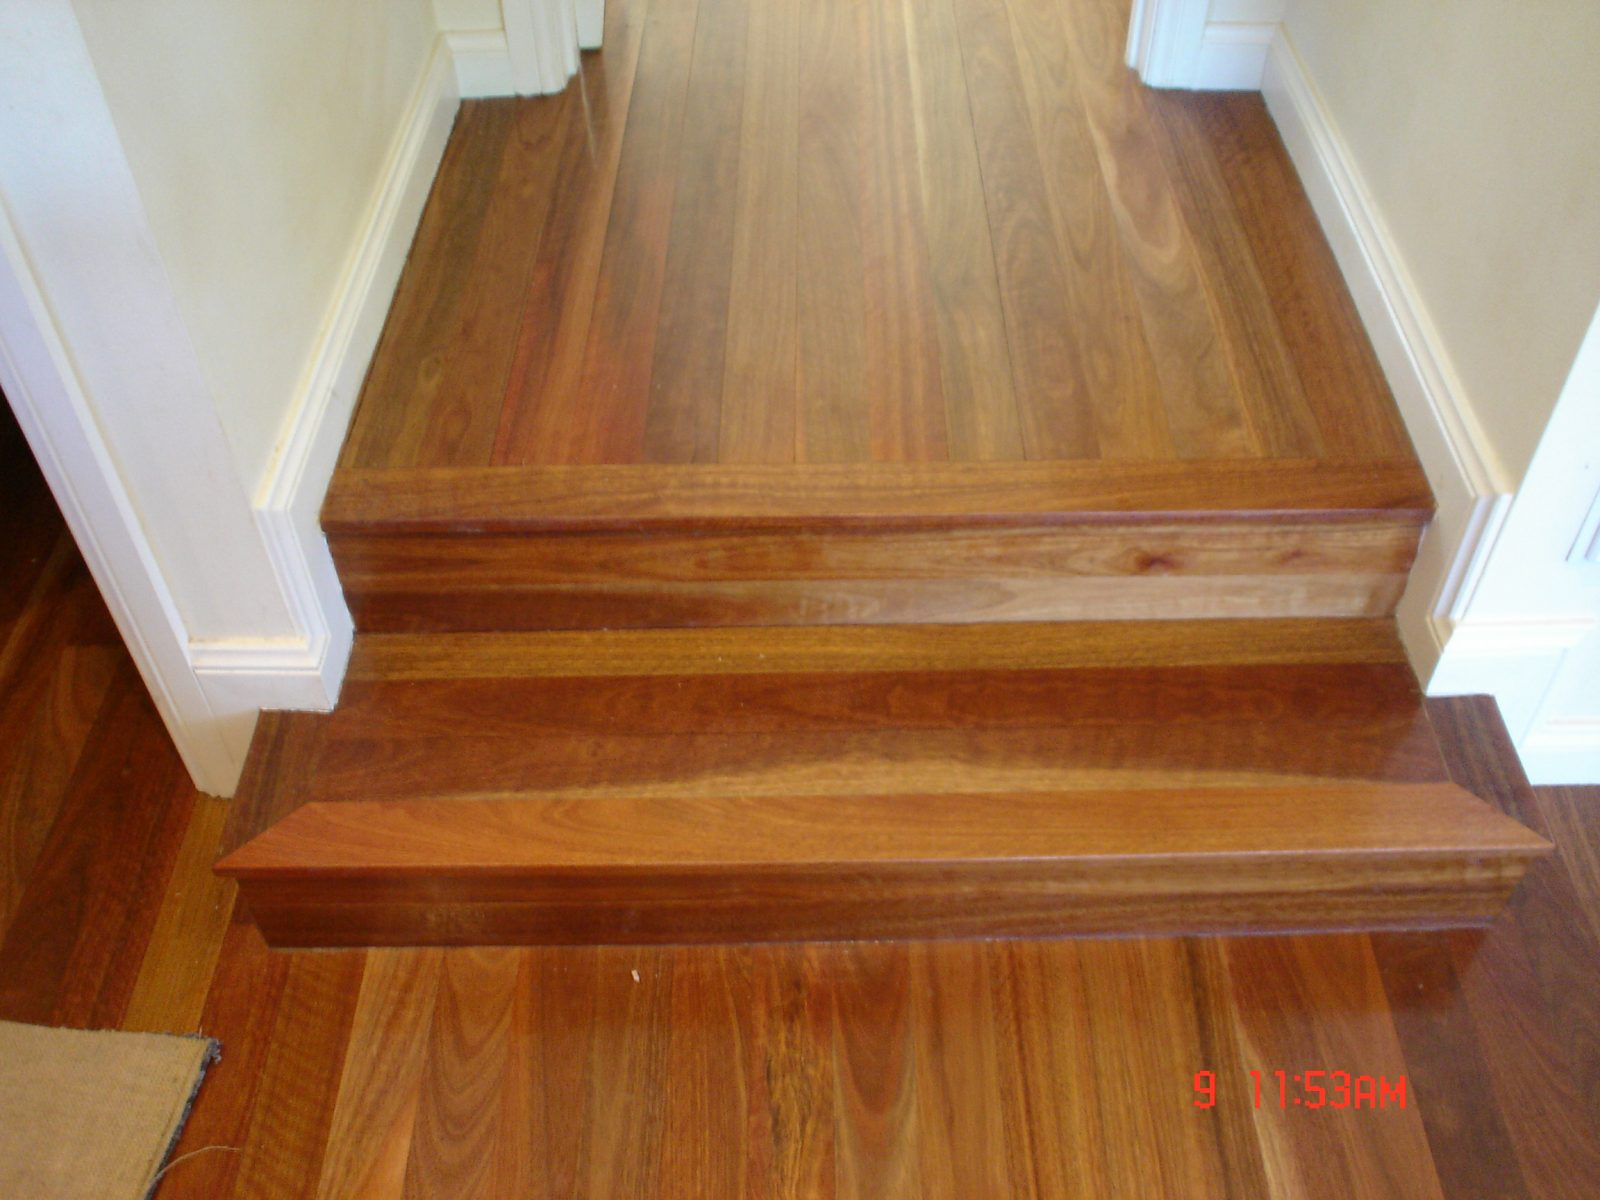 spotted-gum-stairs-in-tongue-and-groove-flooring